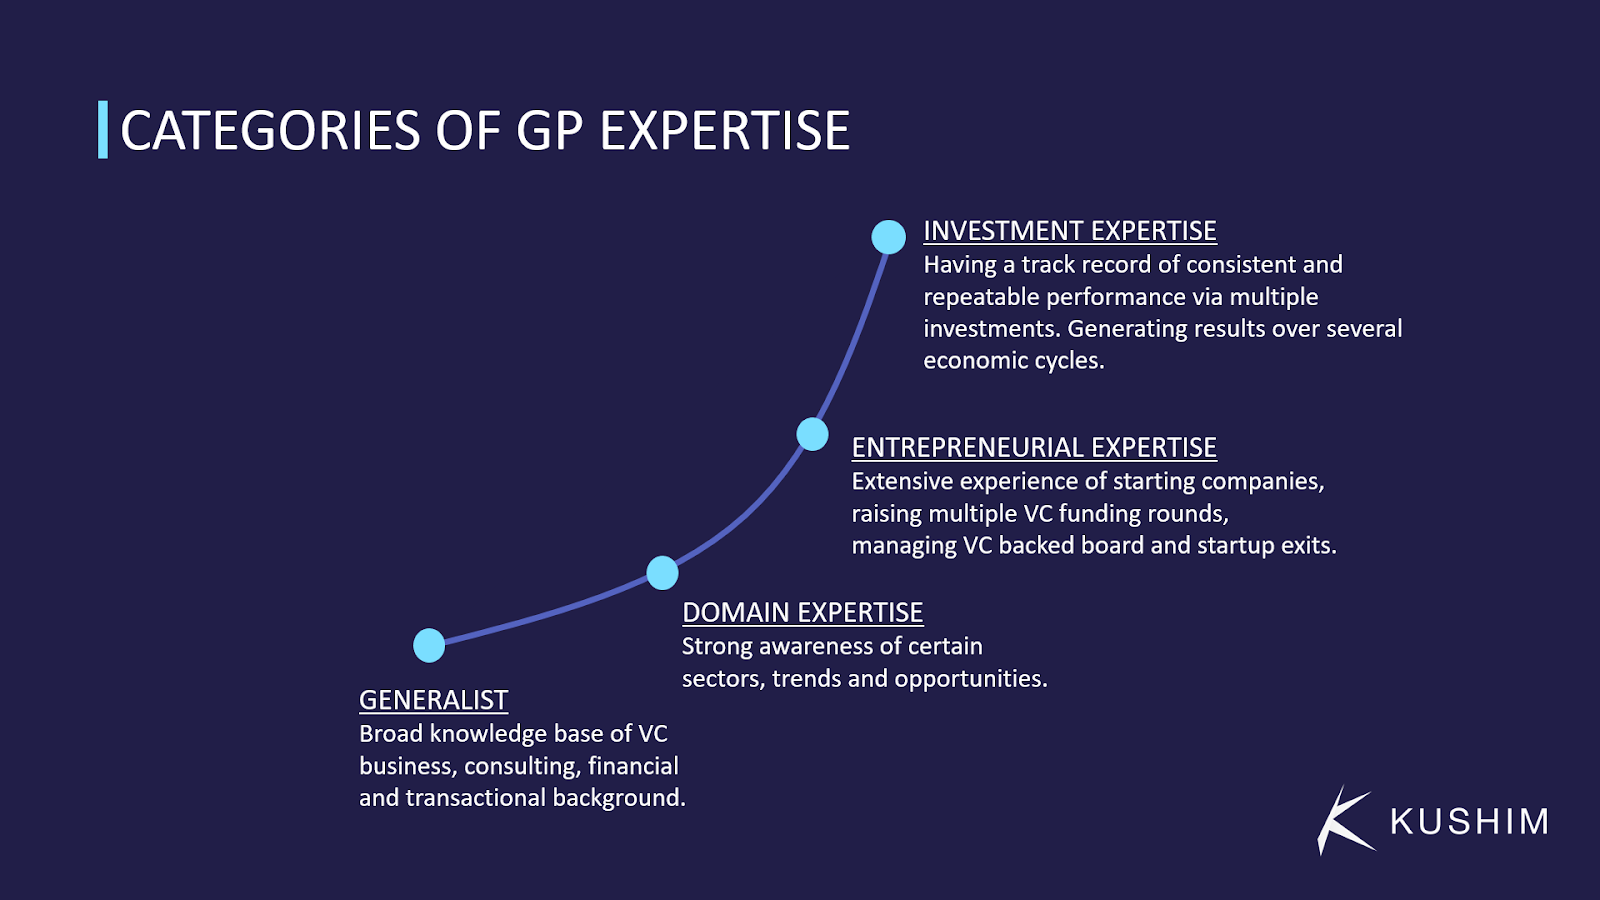 GP expertise and fundraising